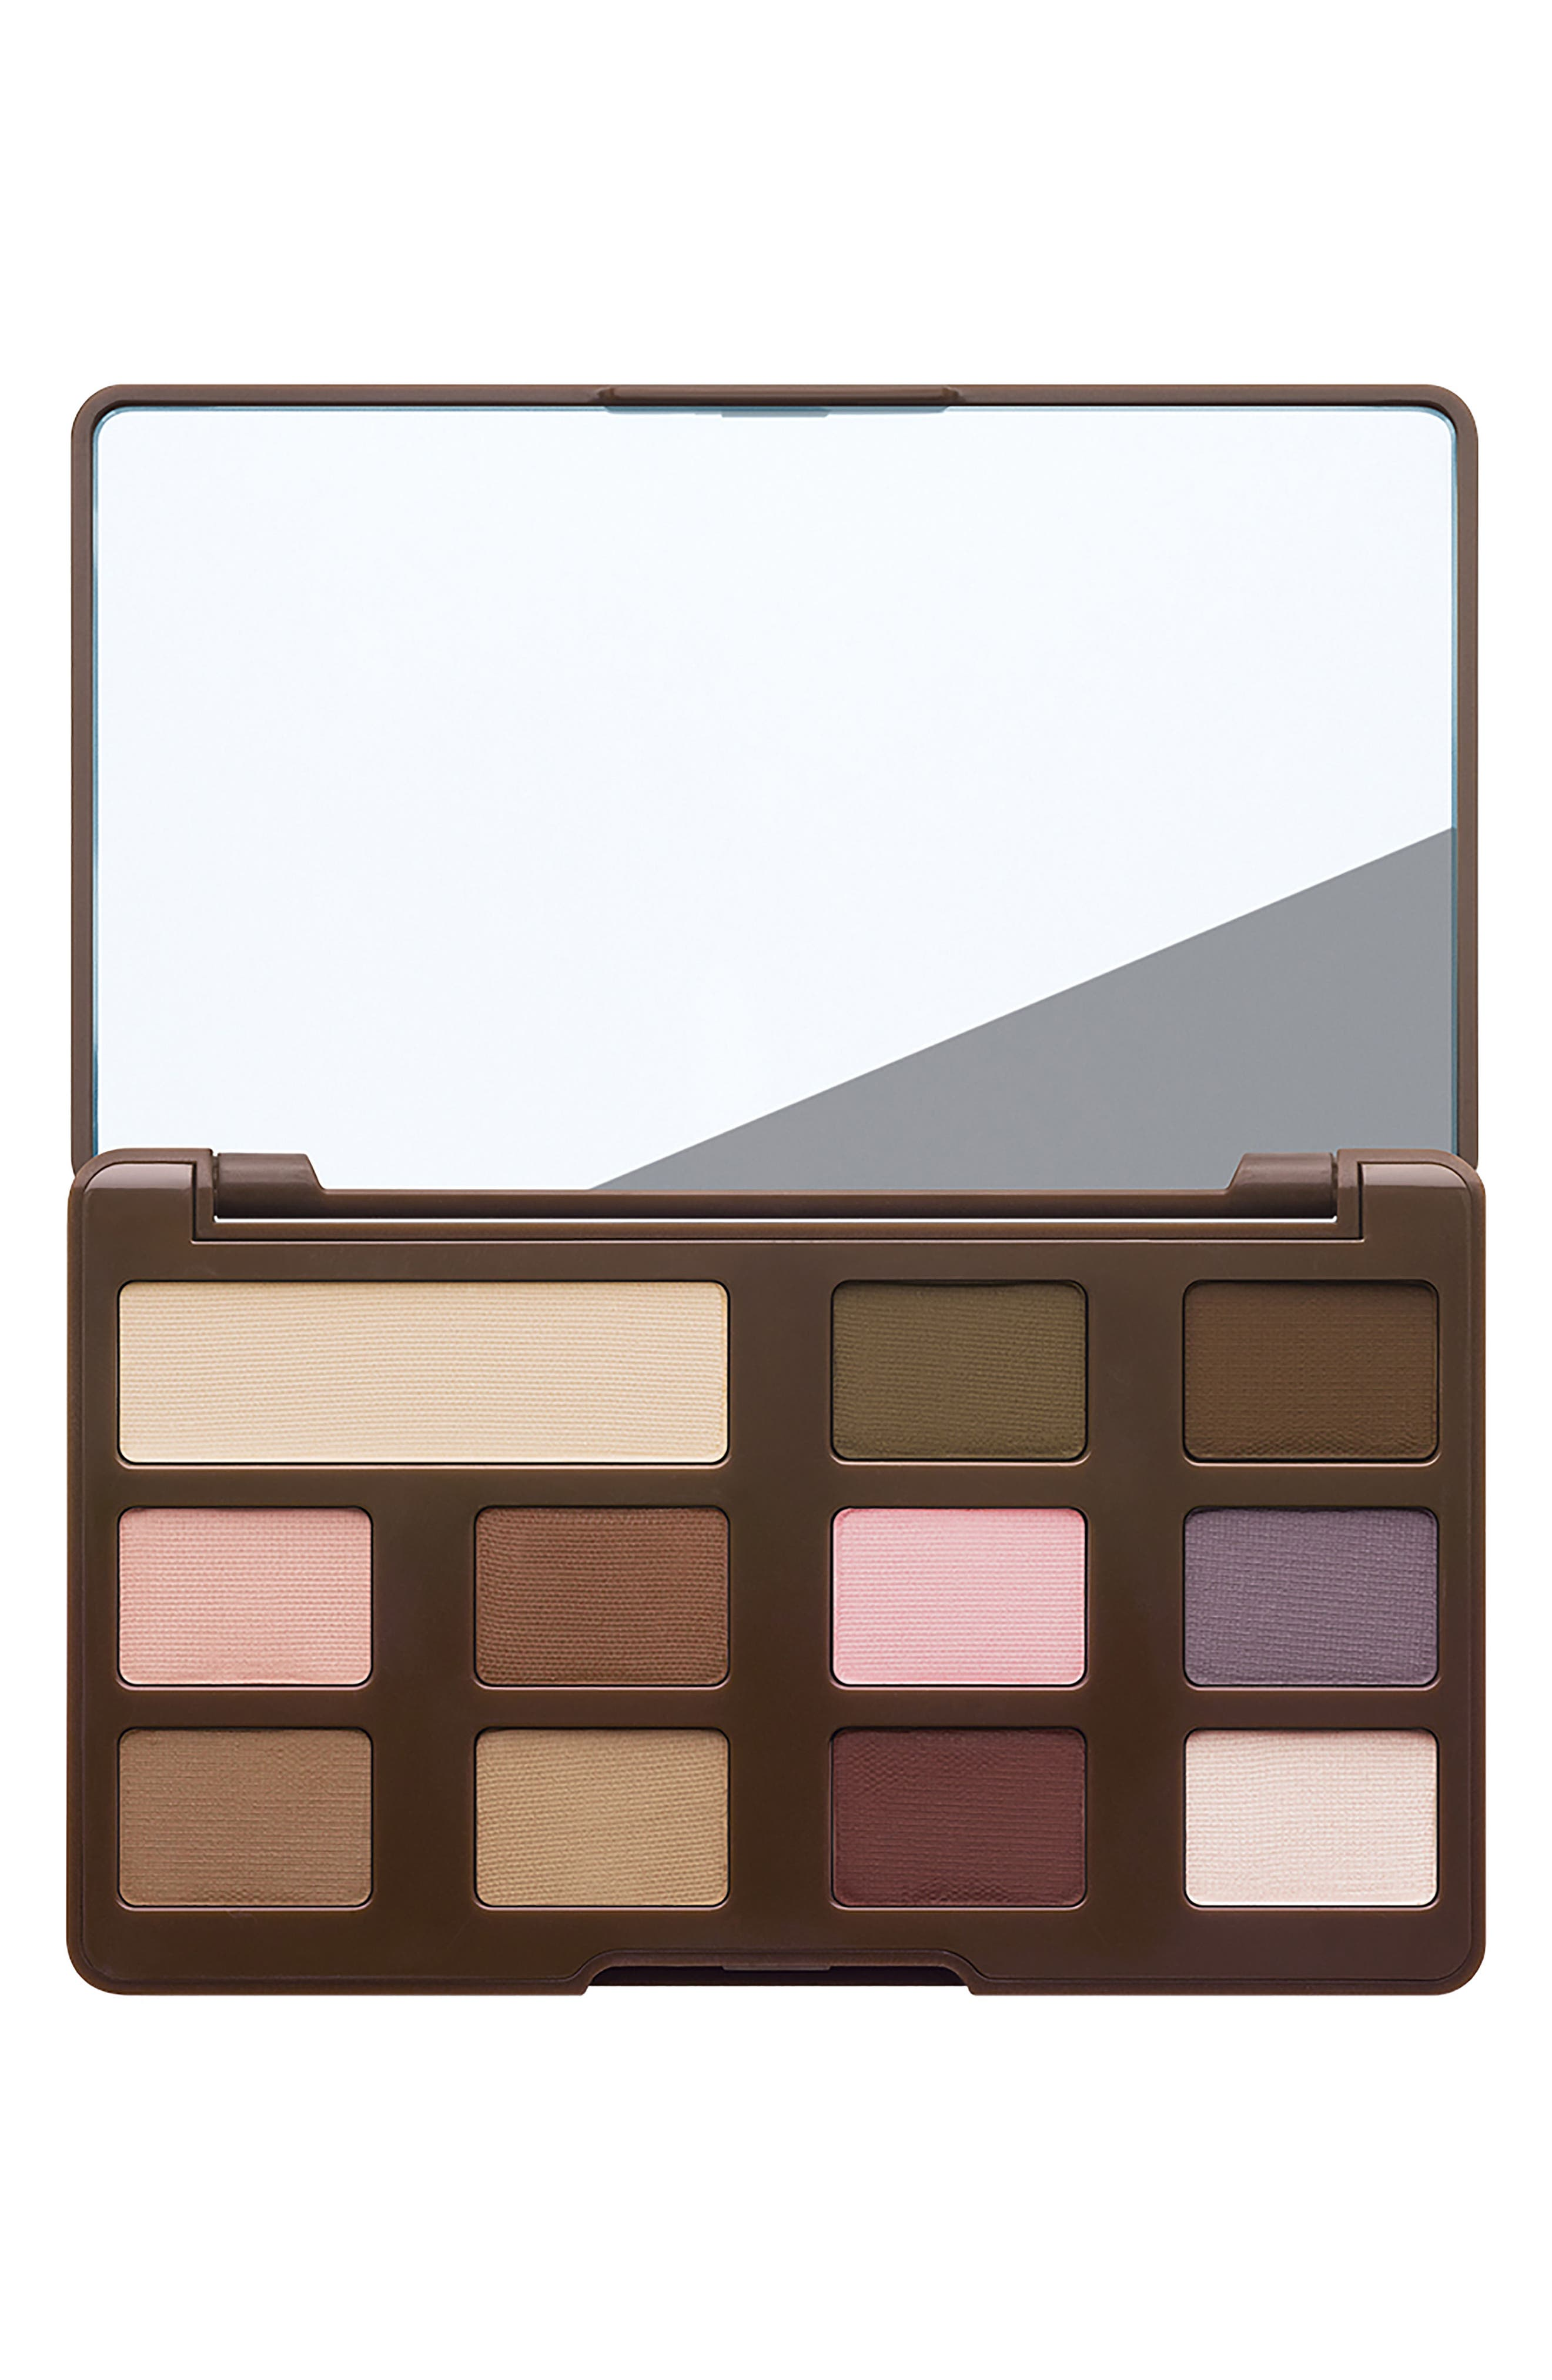 Matte Chocolate Chip Eyeshadow Palette,                             Alternate thumbnail 2, color,                             Chocolate Chip